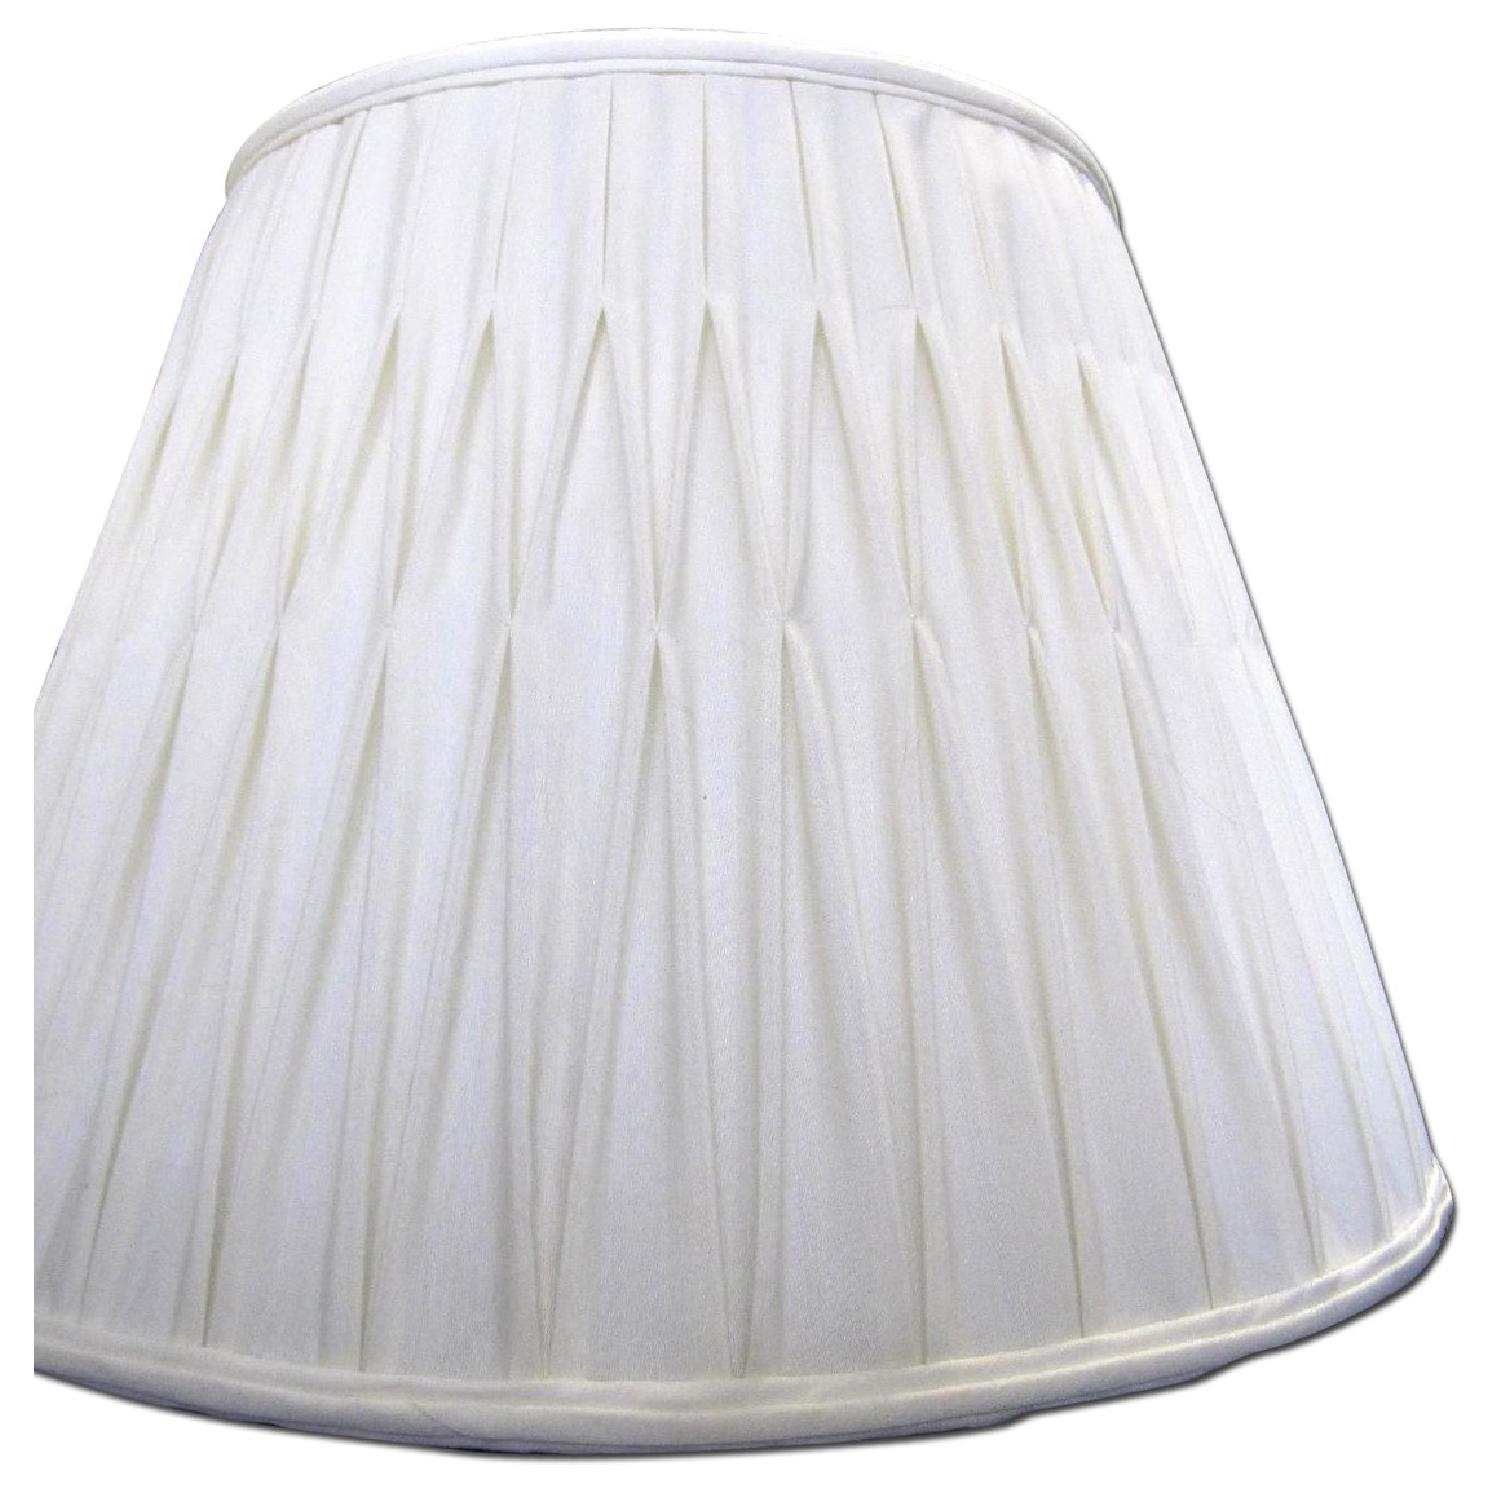 Ivory Silk-Lined Silk Pleated Lamp Shades - image-0